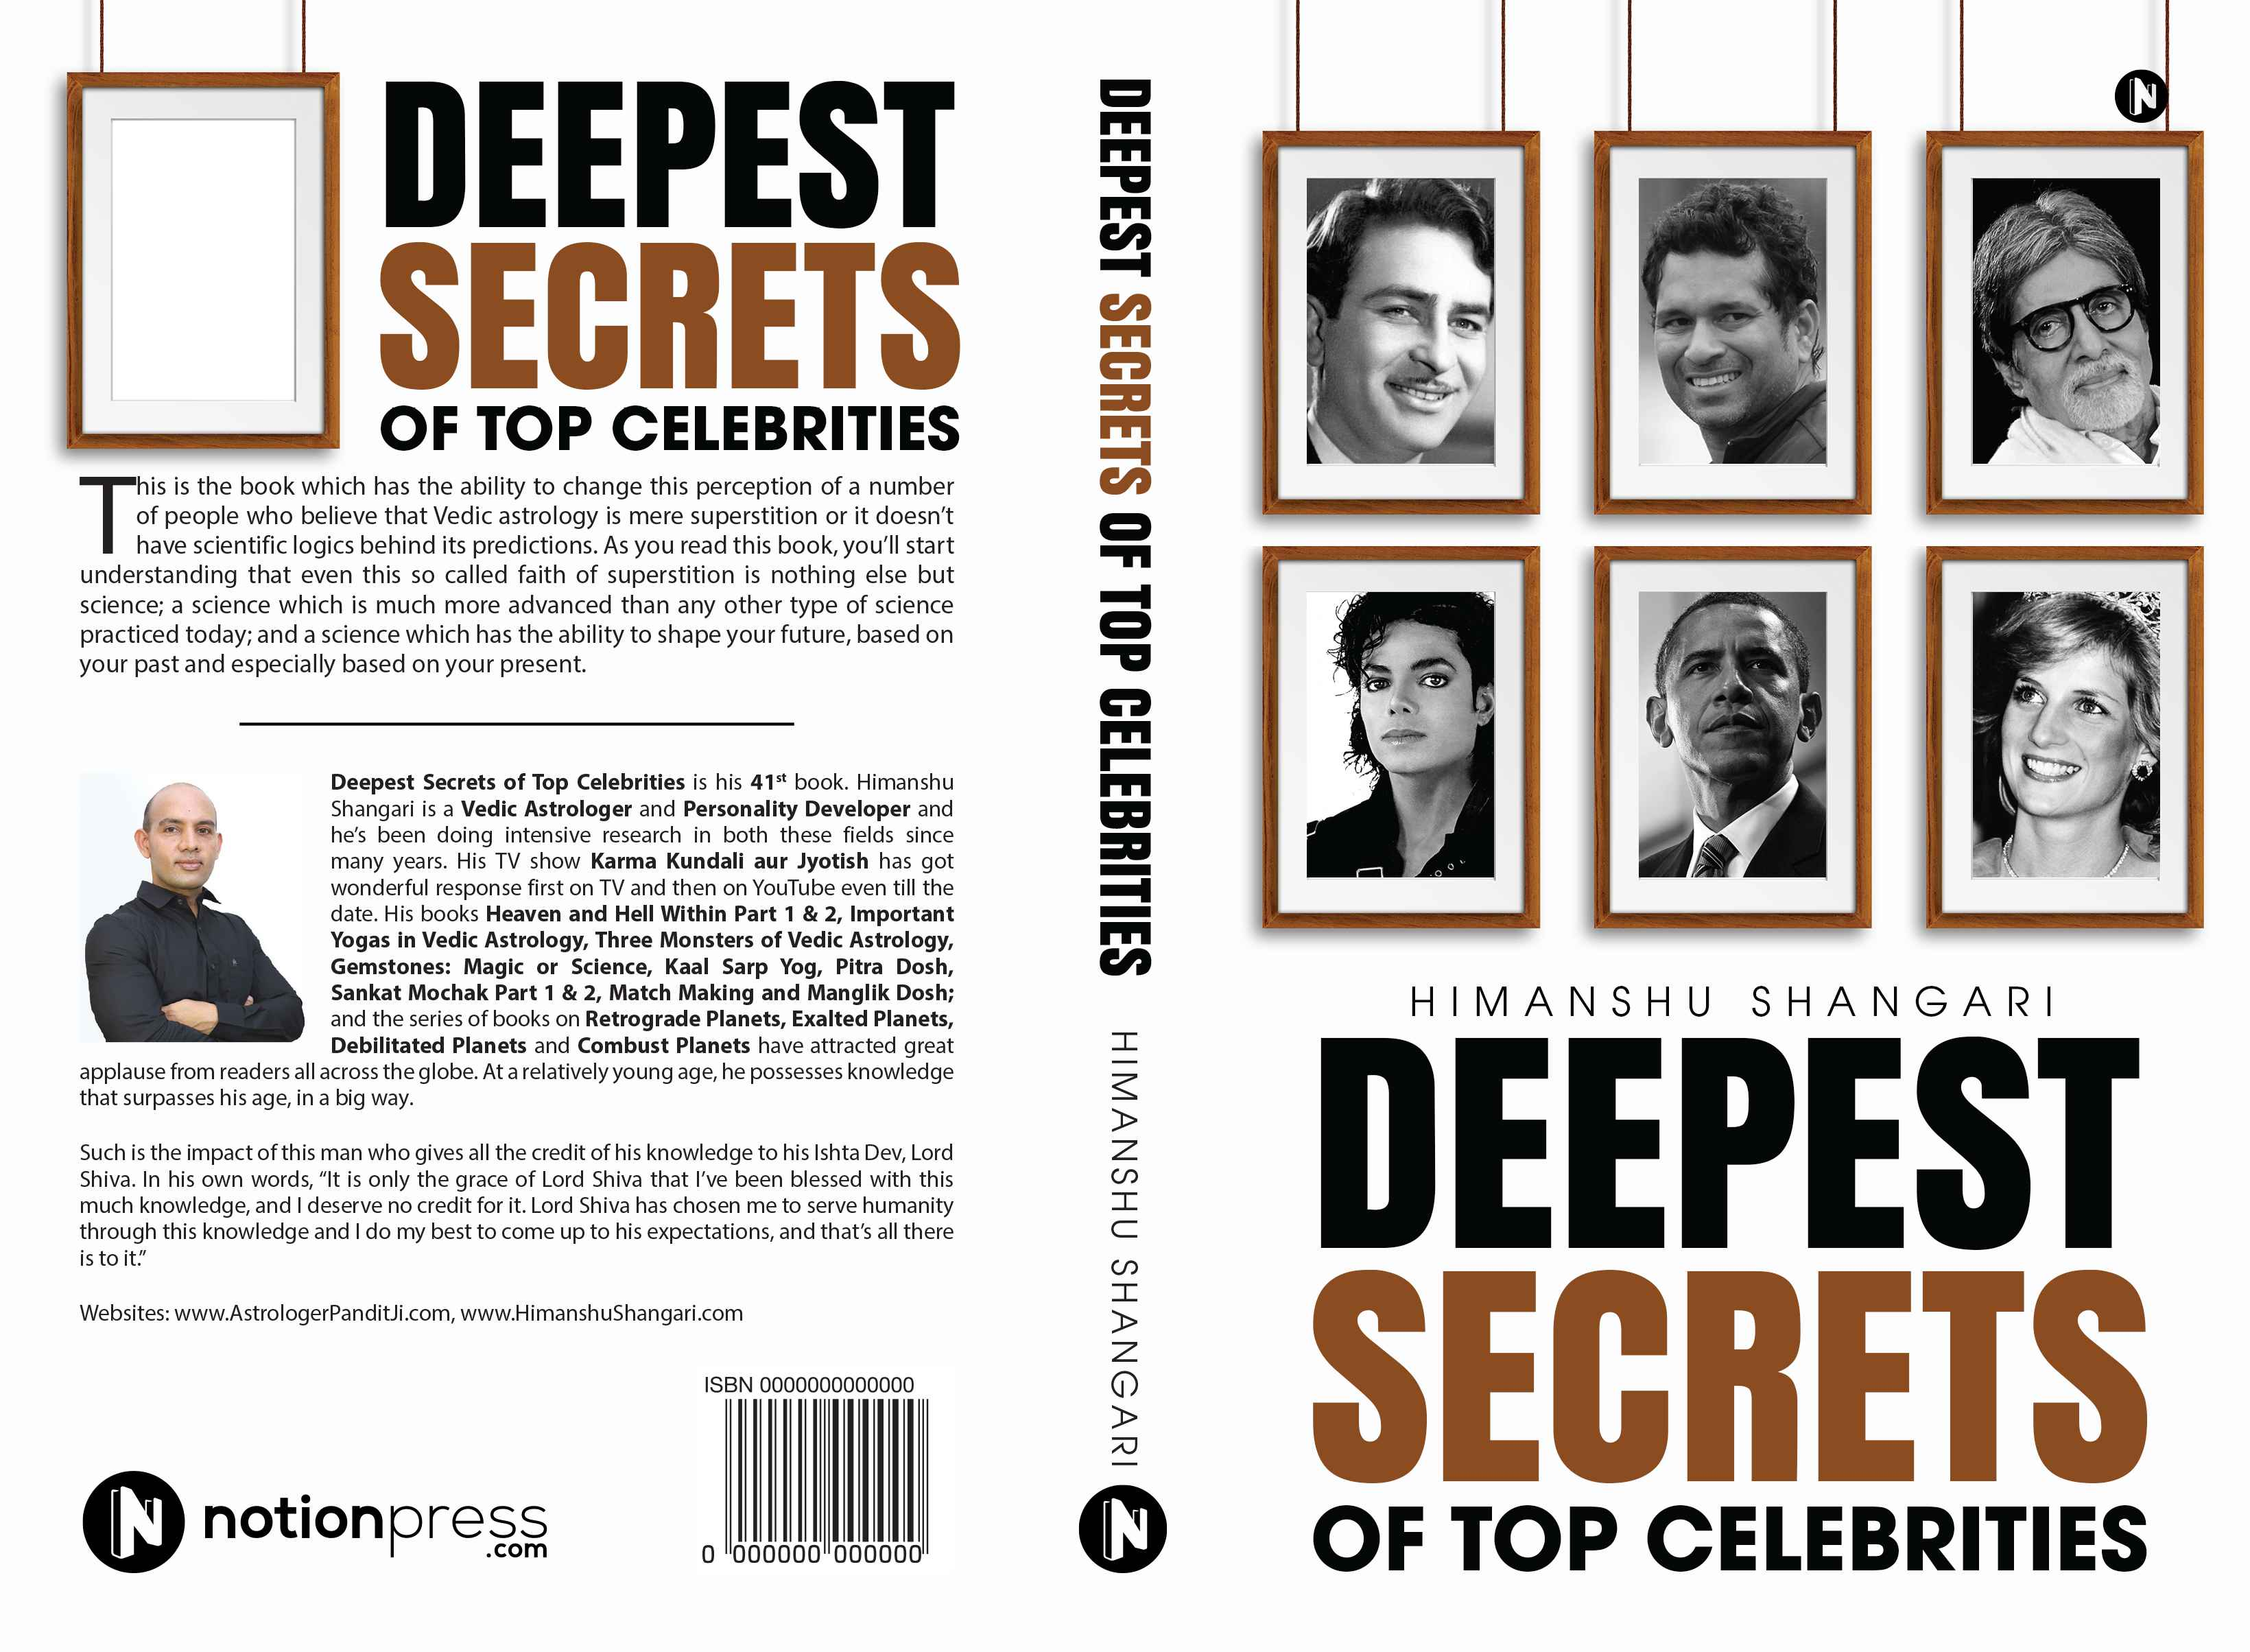 Deepest Secrets of Top Celebrities